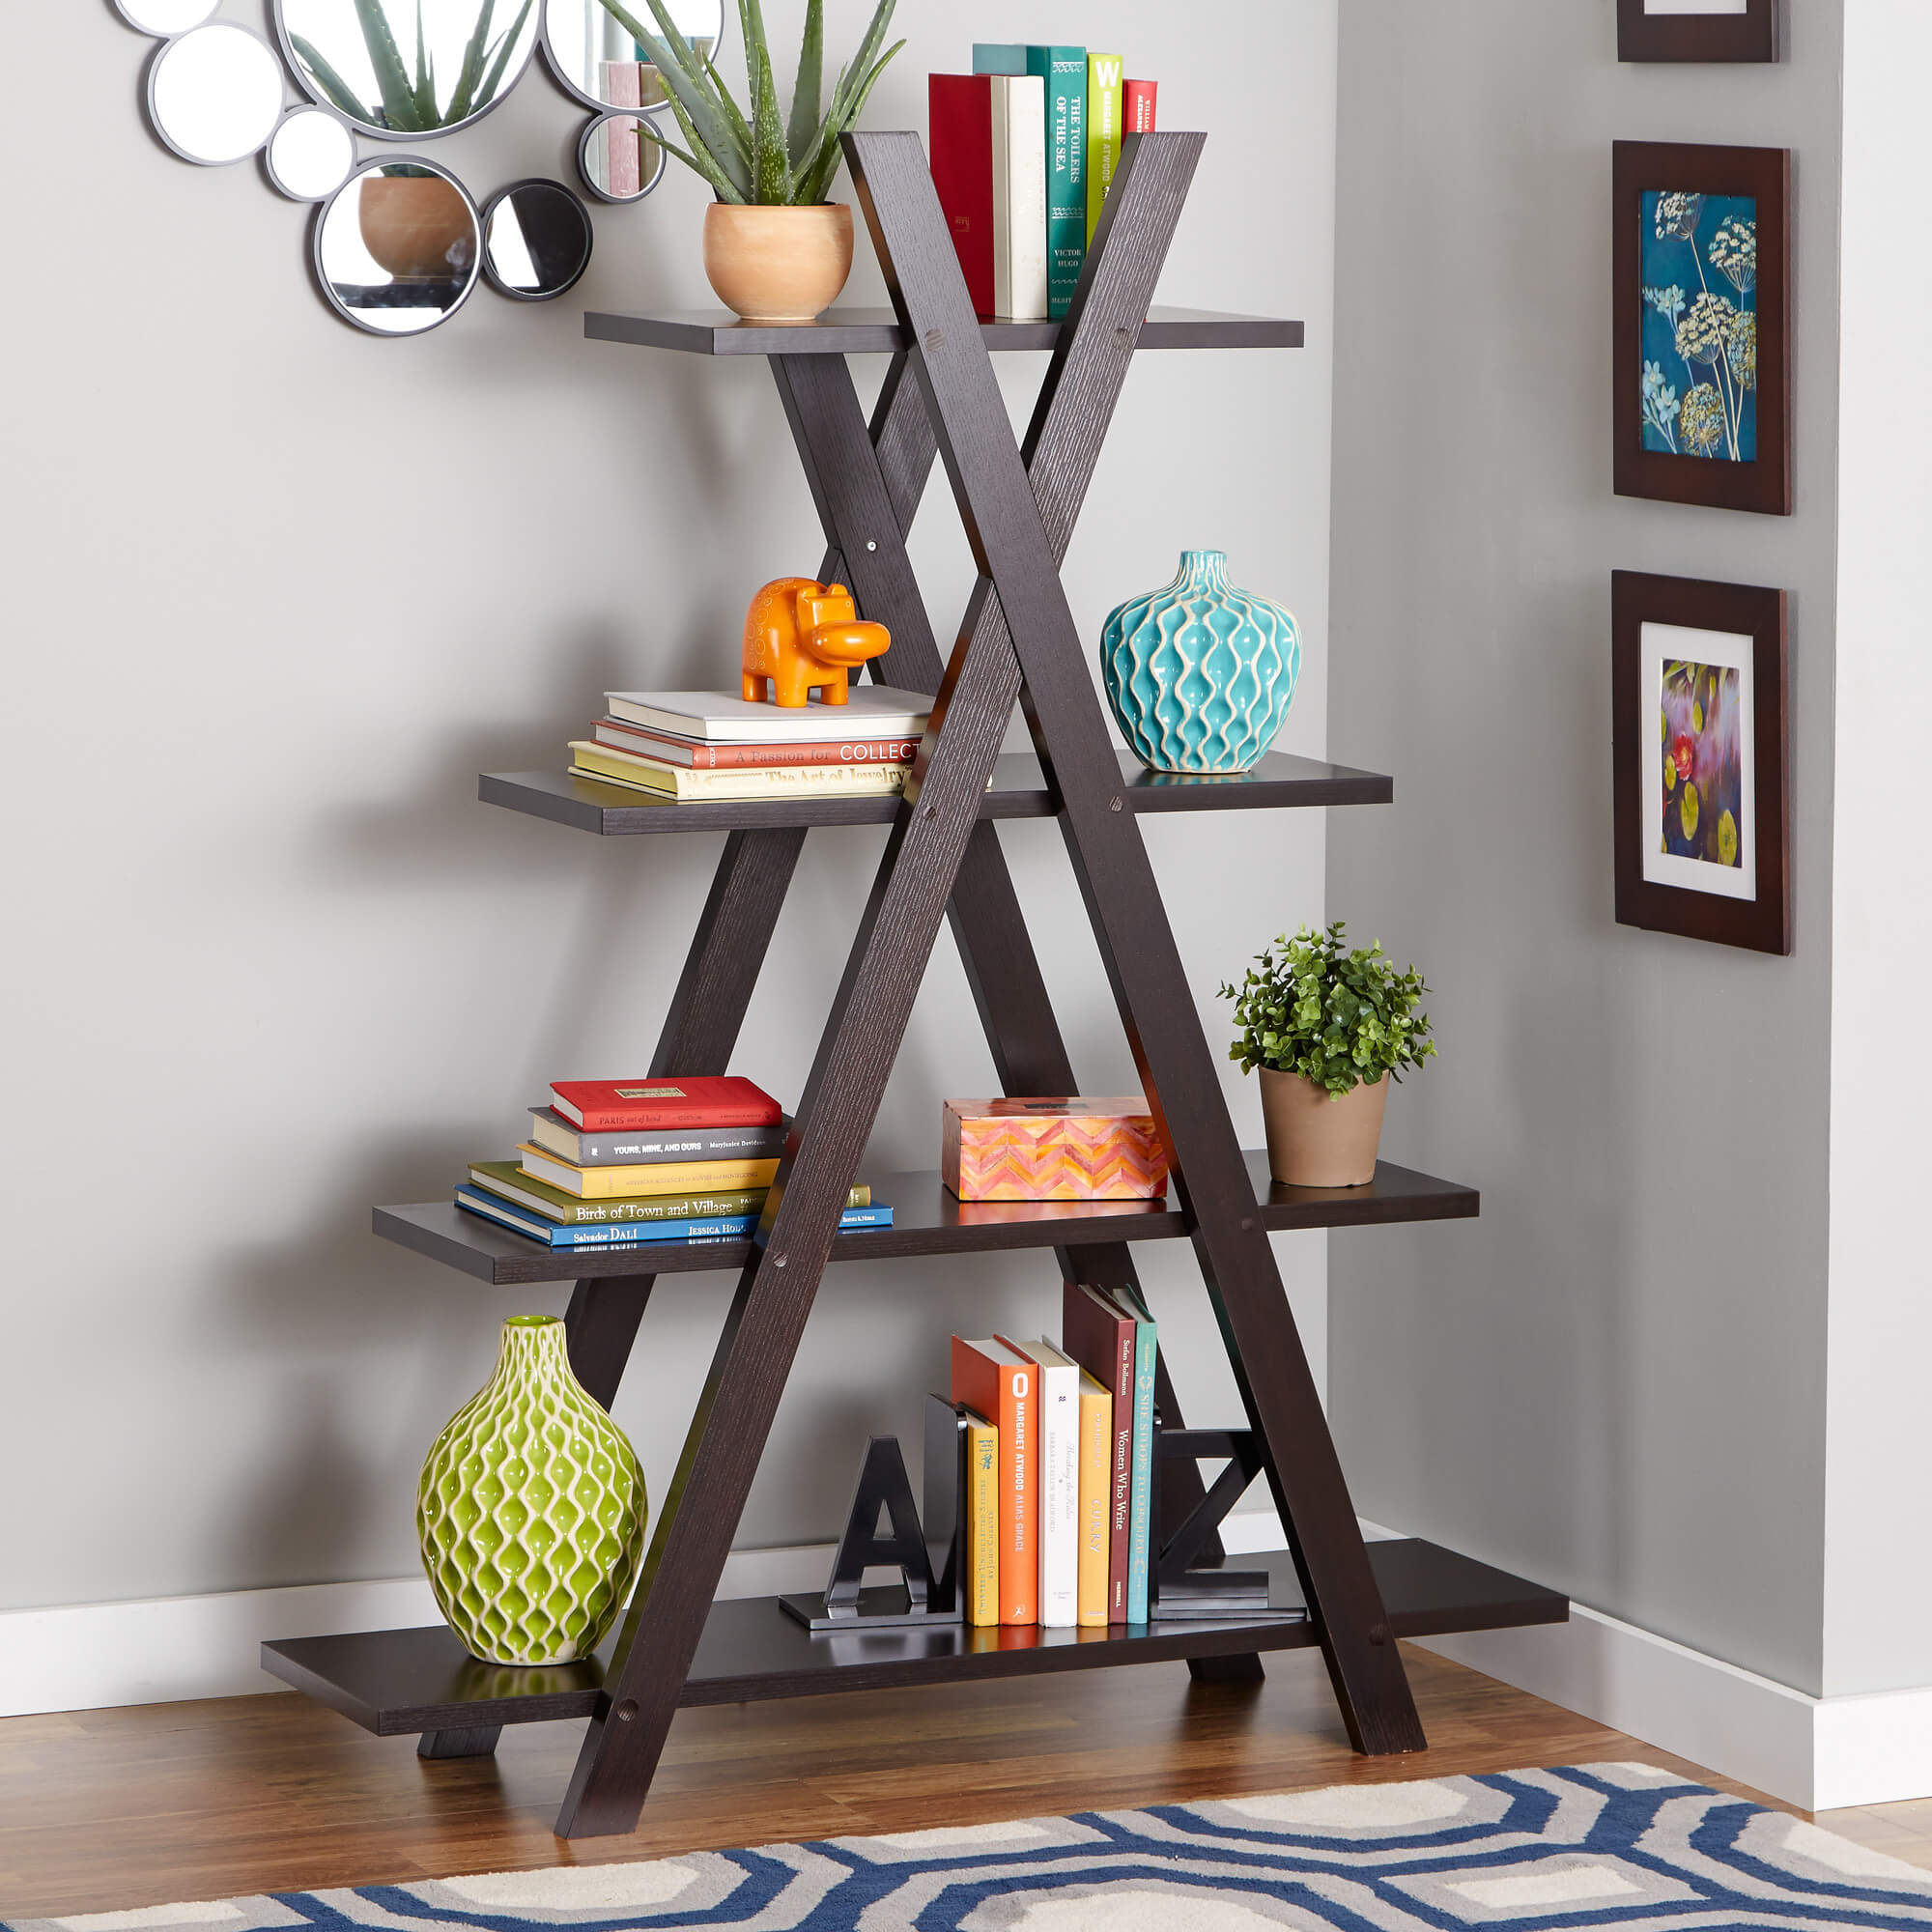 Contemporary design is not limited to any specific look or philosophy; it merely needs to be fresh, novel, and of-the-moment. These bookshelves will flaunt the newest design turns and evoke an experimental or progressive tone. Our example here features a freestanding ladder design, with an A-frame supporting ever-wider shelving.